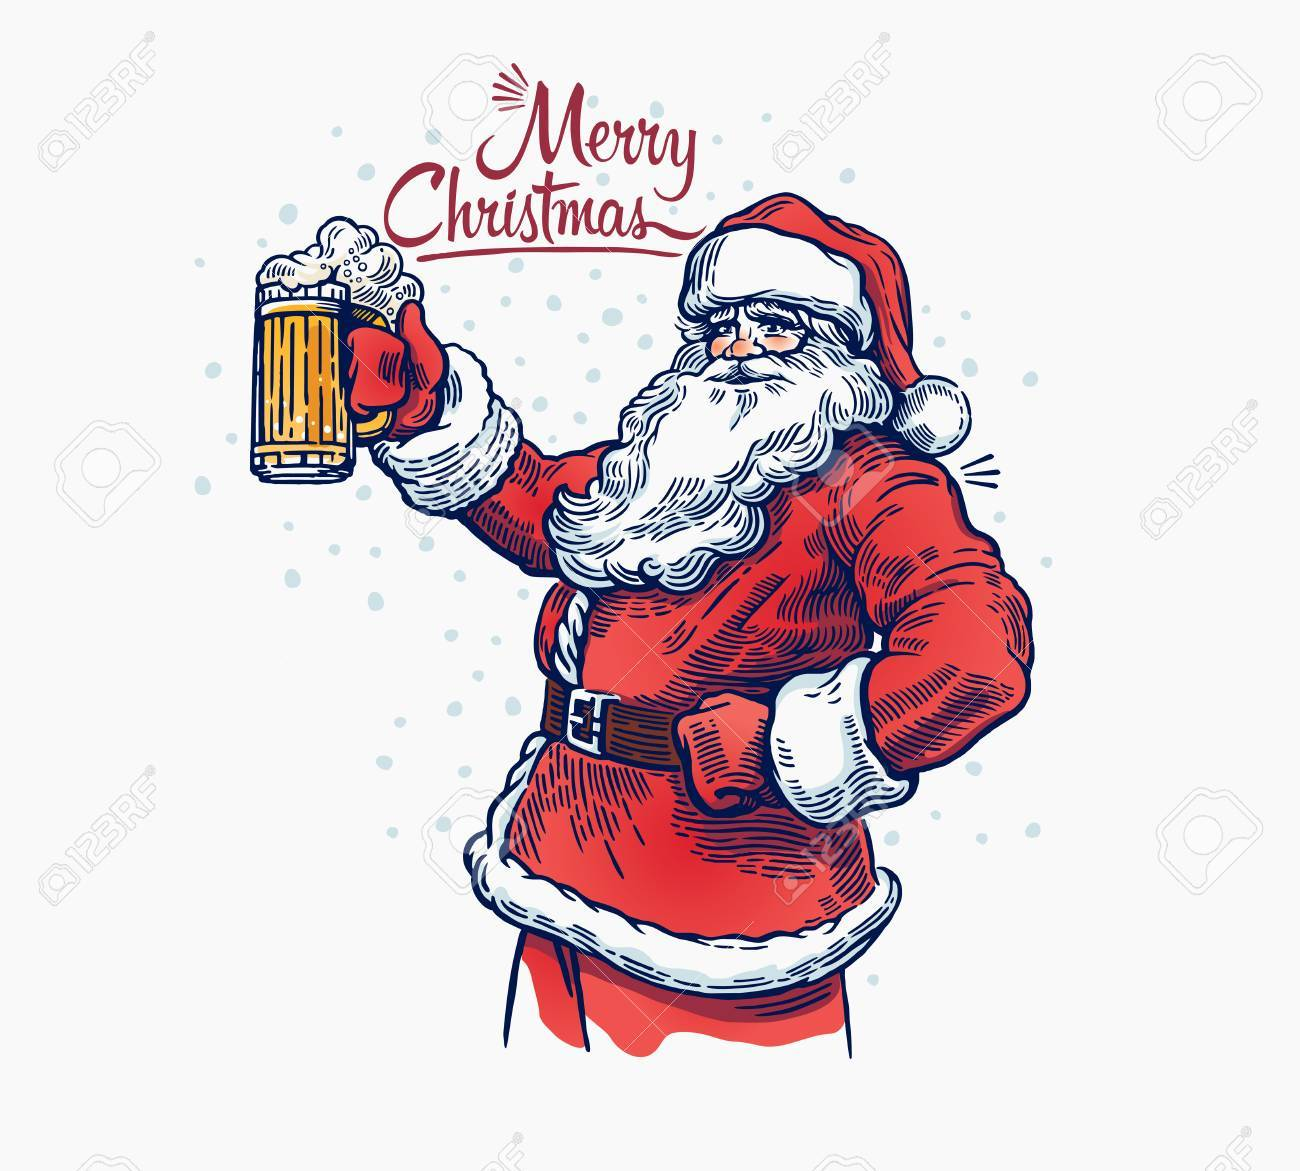 Jolly Santa Claus with a beer in hand. Illustration - 67968795